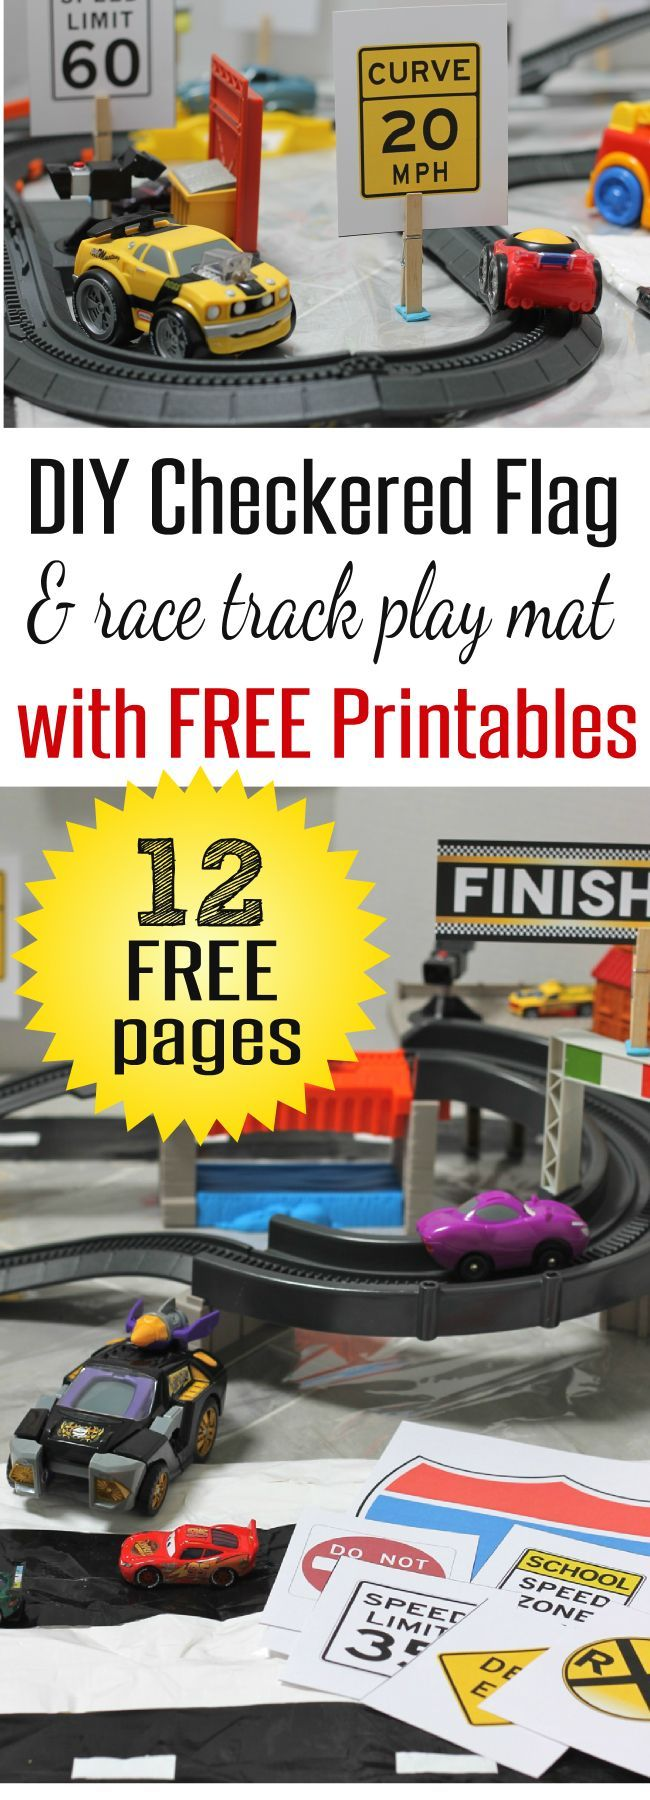 12 Free Pages of Race Car Printables and Road Signs to go with DIY Race Car and Checkered Flag Play Mat by HappyandBlessedHome.com #RecycleYourPeriodPad #sp   FREE Printables   Kid's Birthday Party   Race Cars   Kid's Activities   Road Signs   homeschool crafts and game ideas